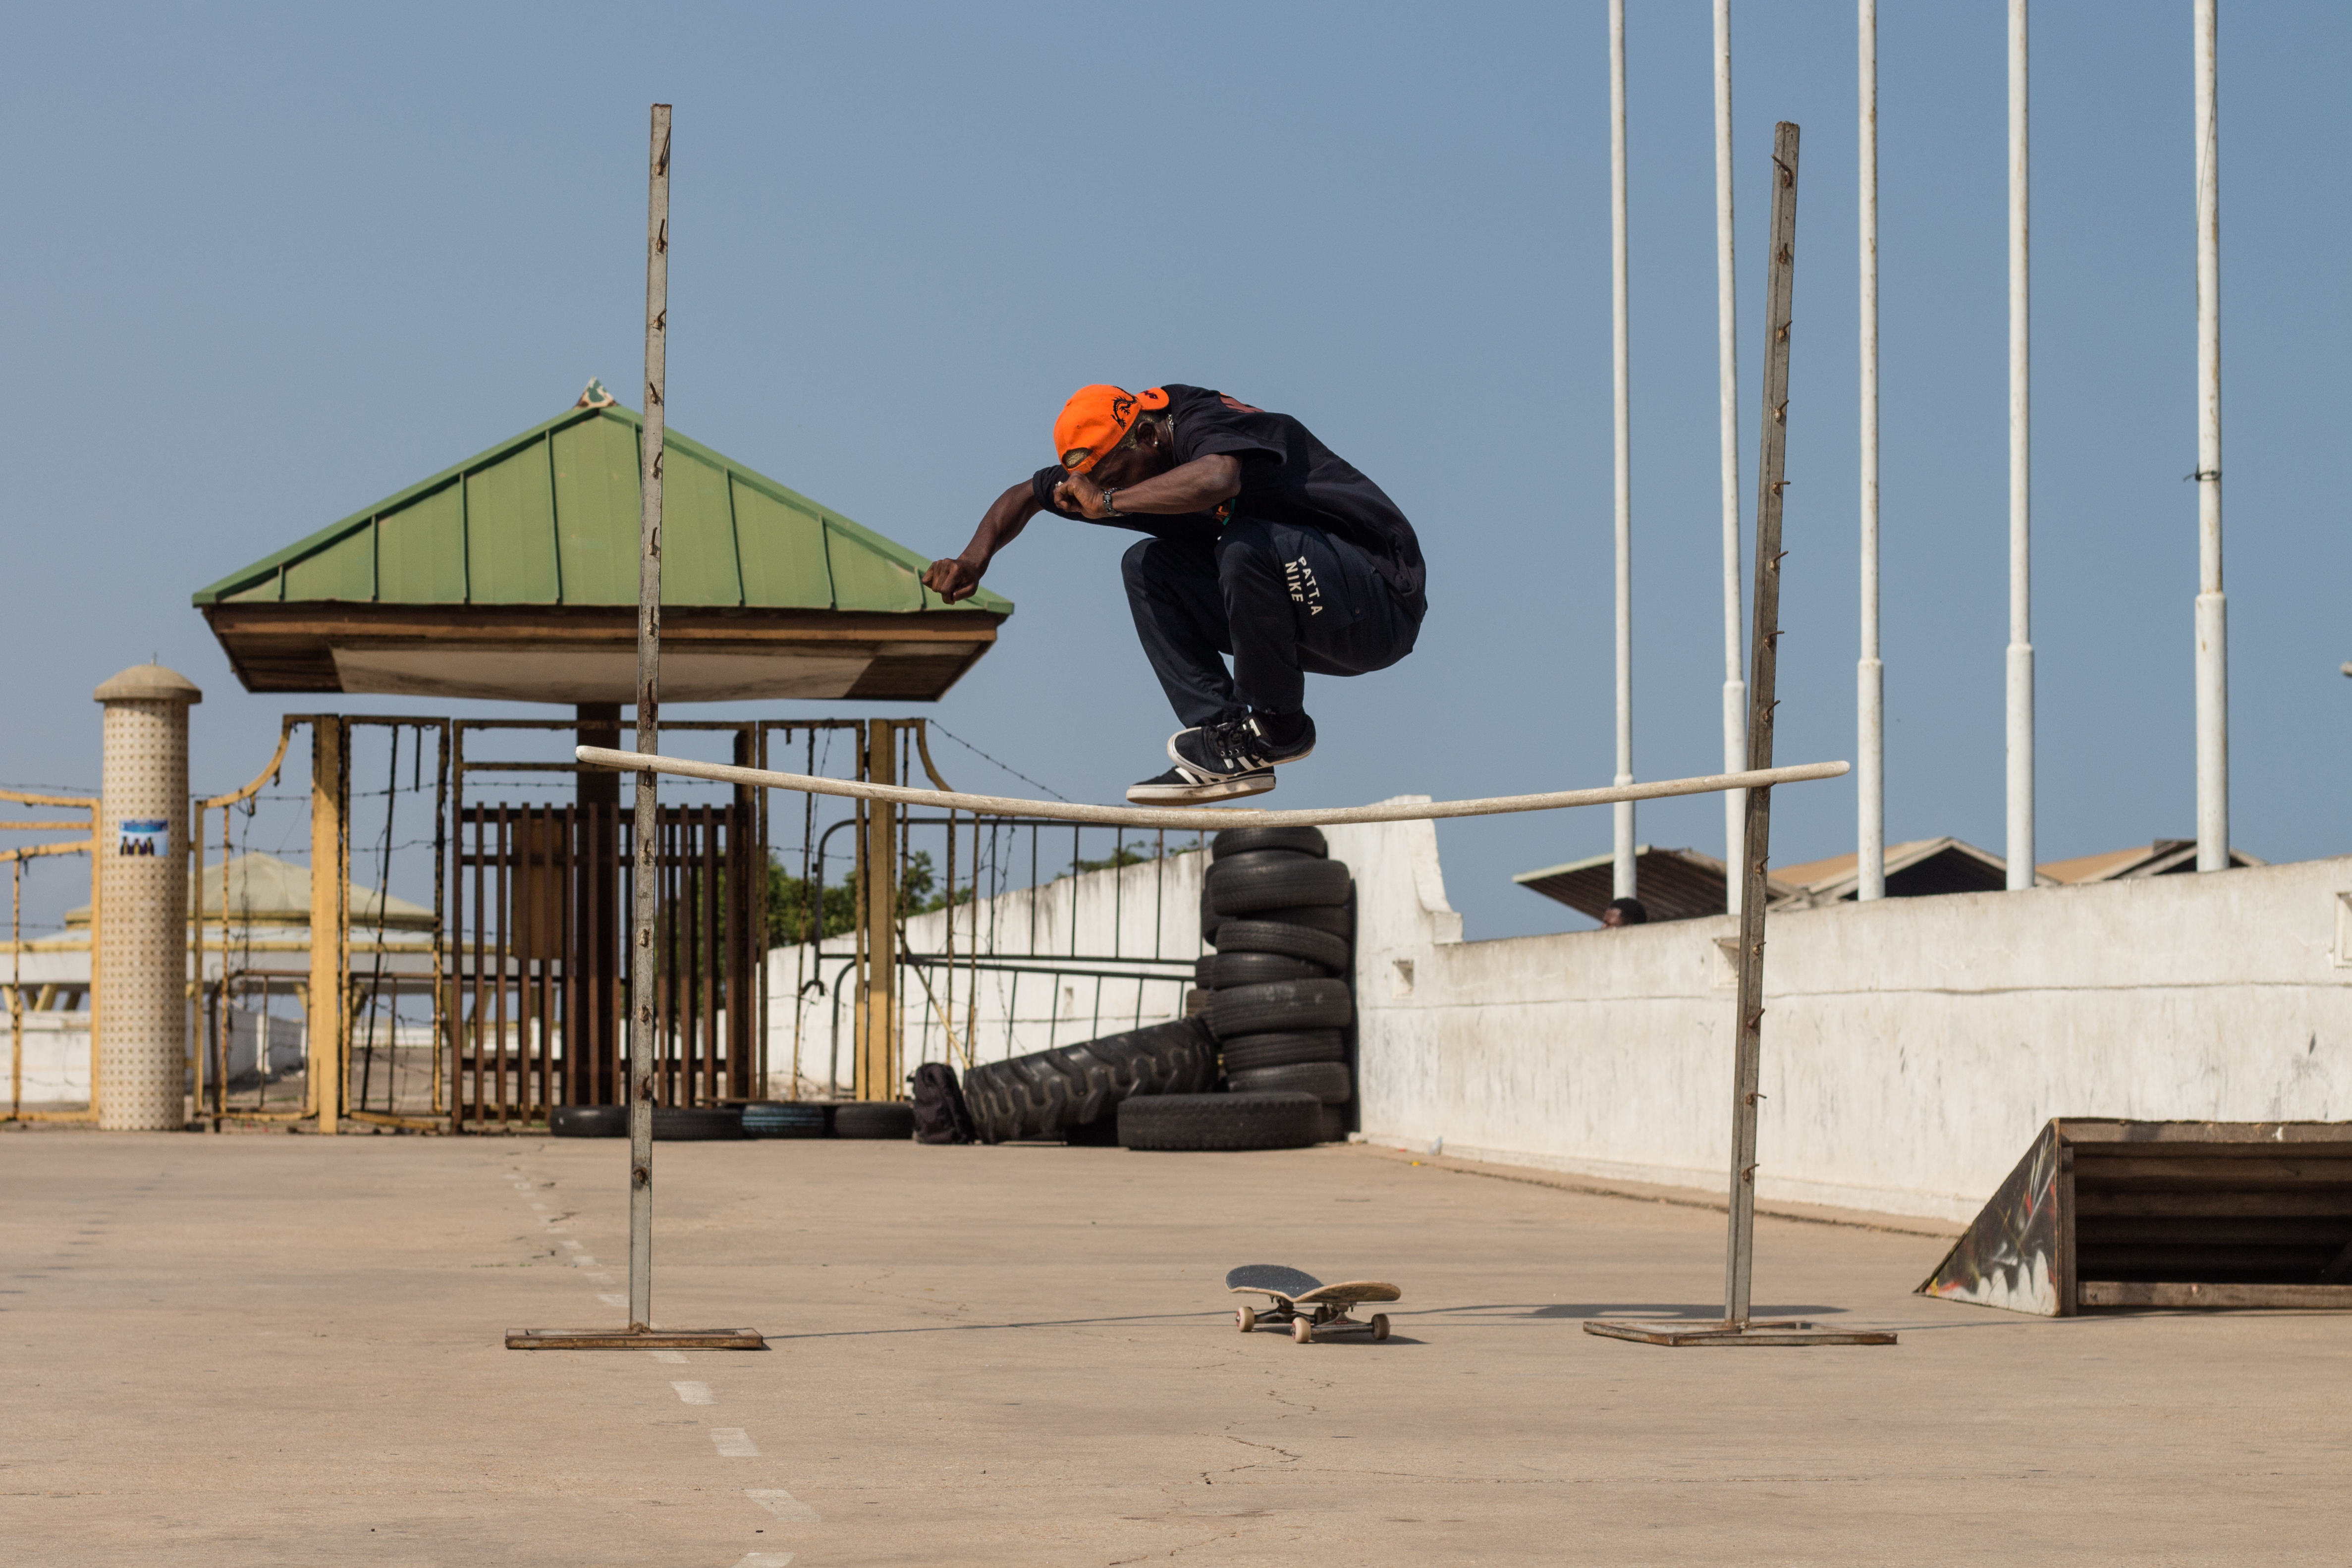 Fahdo Bello (Nigerian Skater from Waffles n Cream)-Hippy Jump in Accra, Ghana